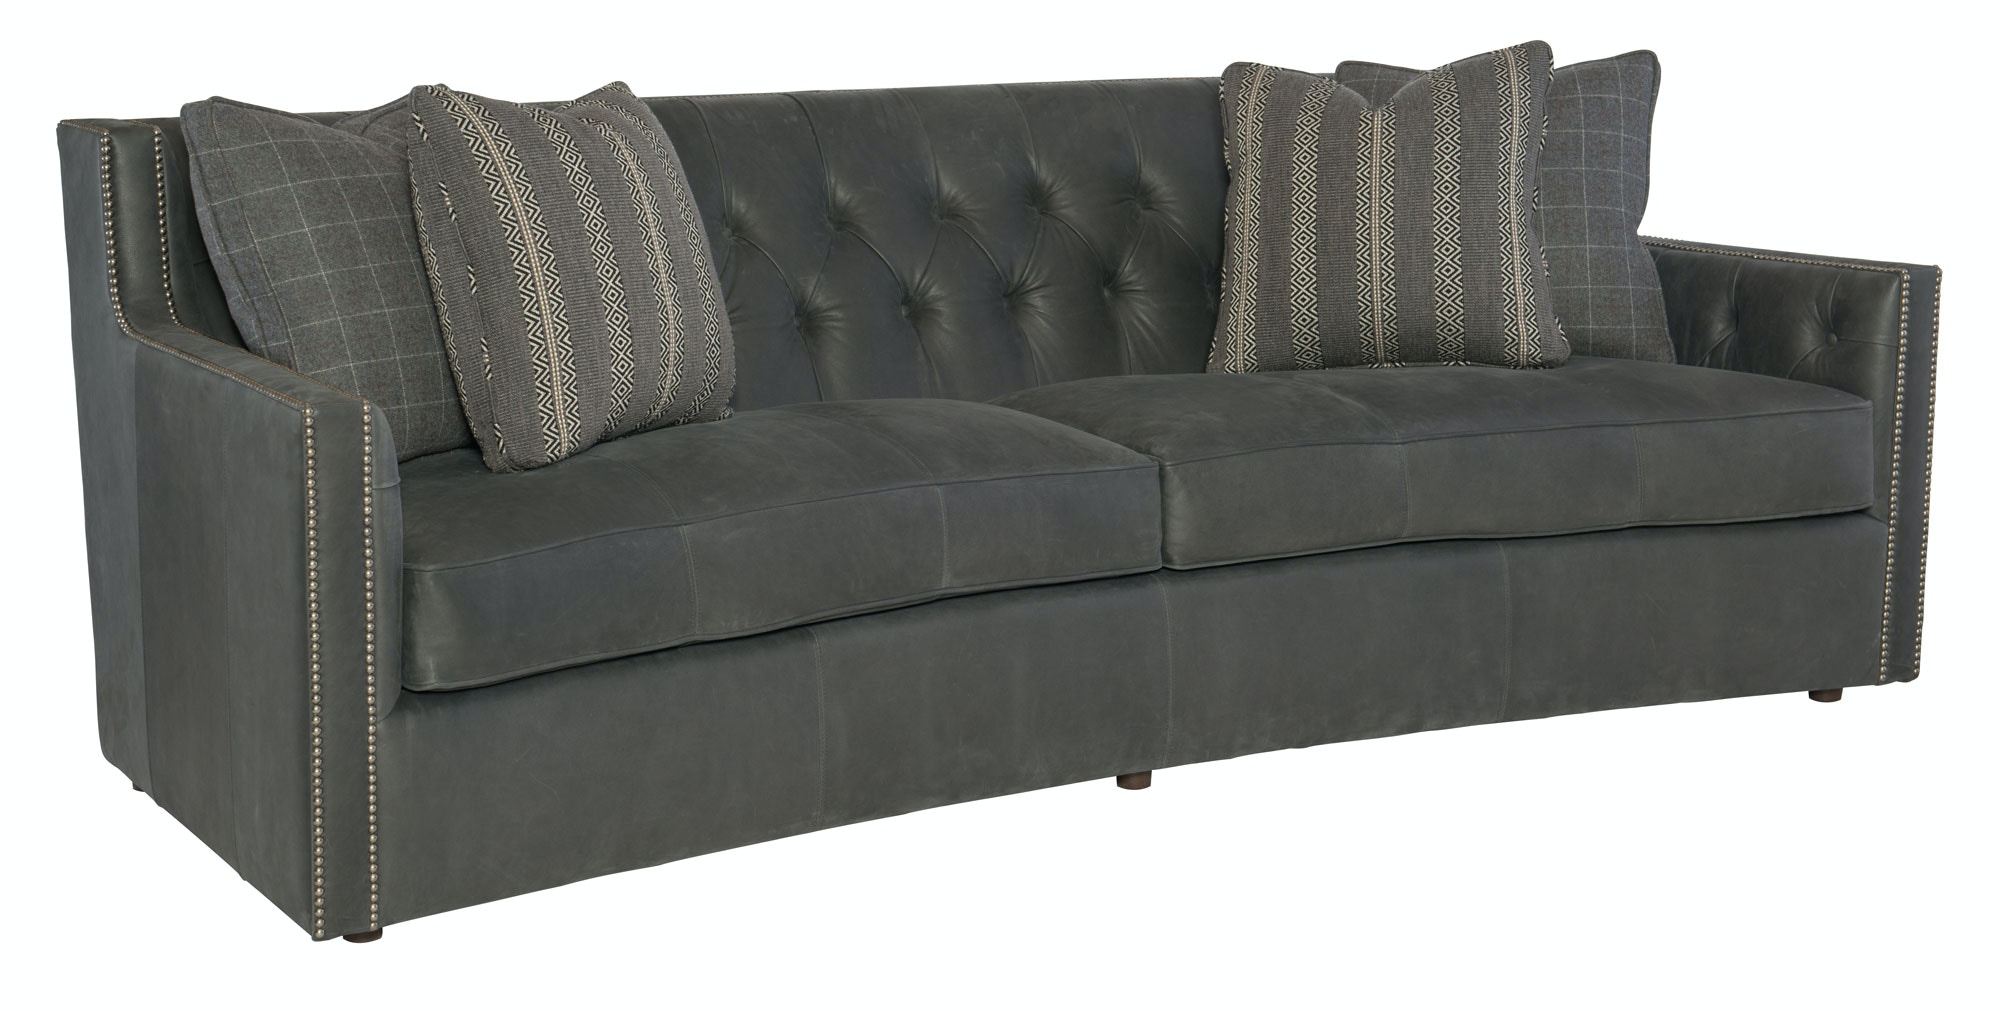 Bernhardt Furniture 7277L